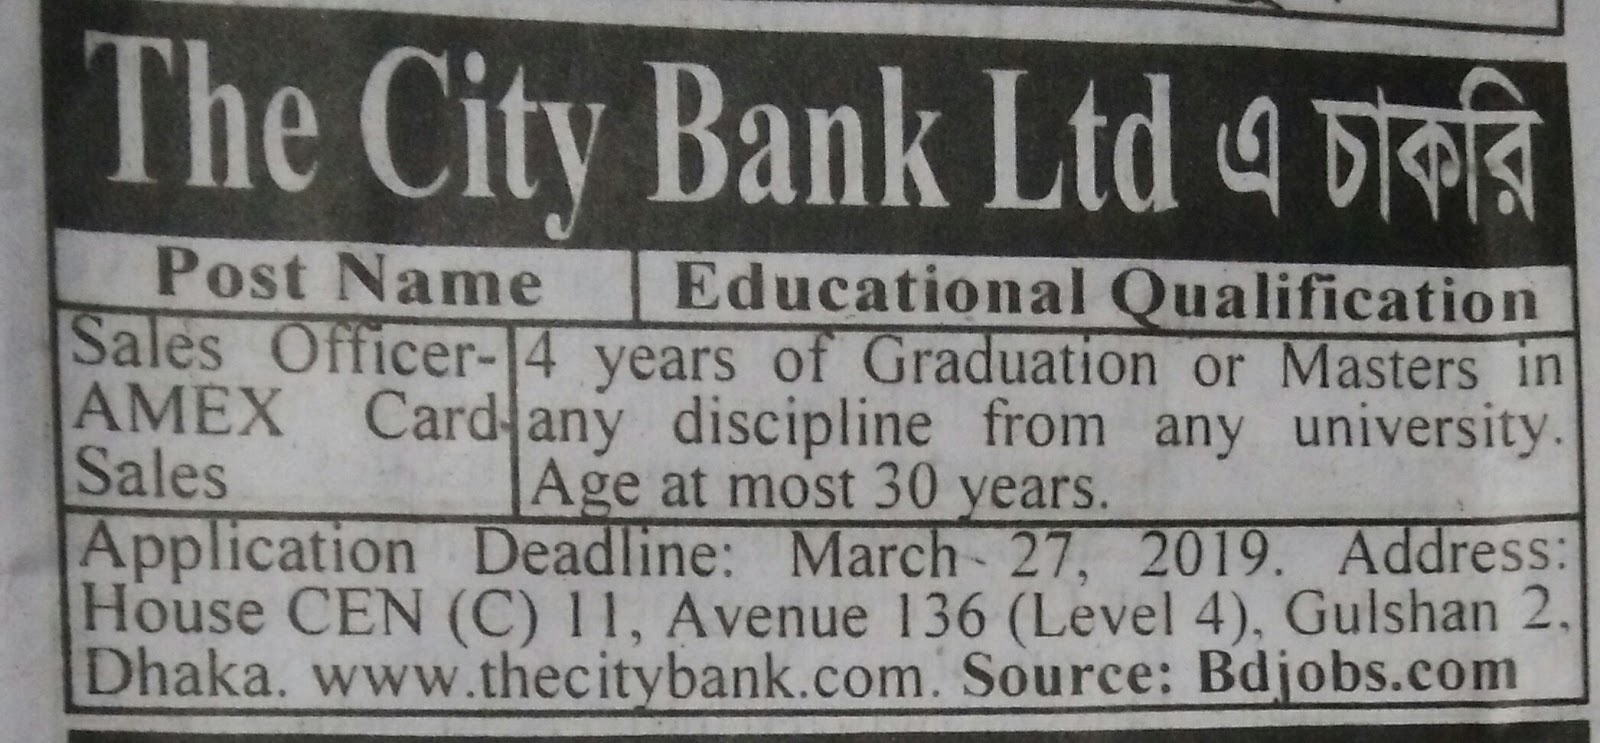 The city Bank lmt job circular 2019